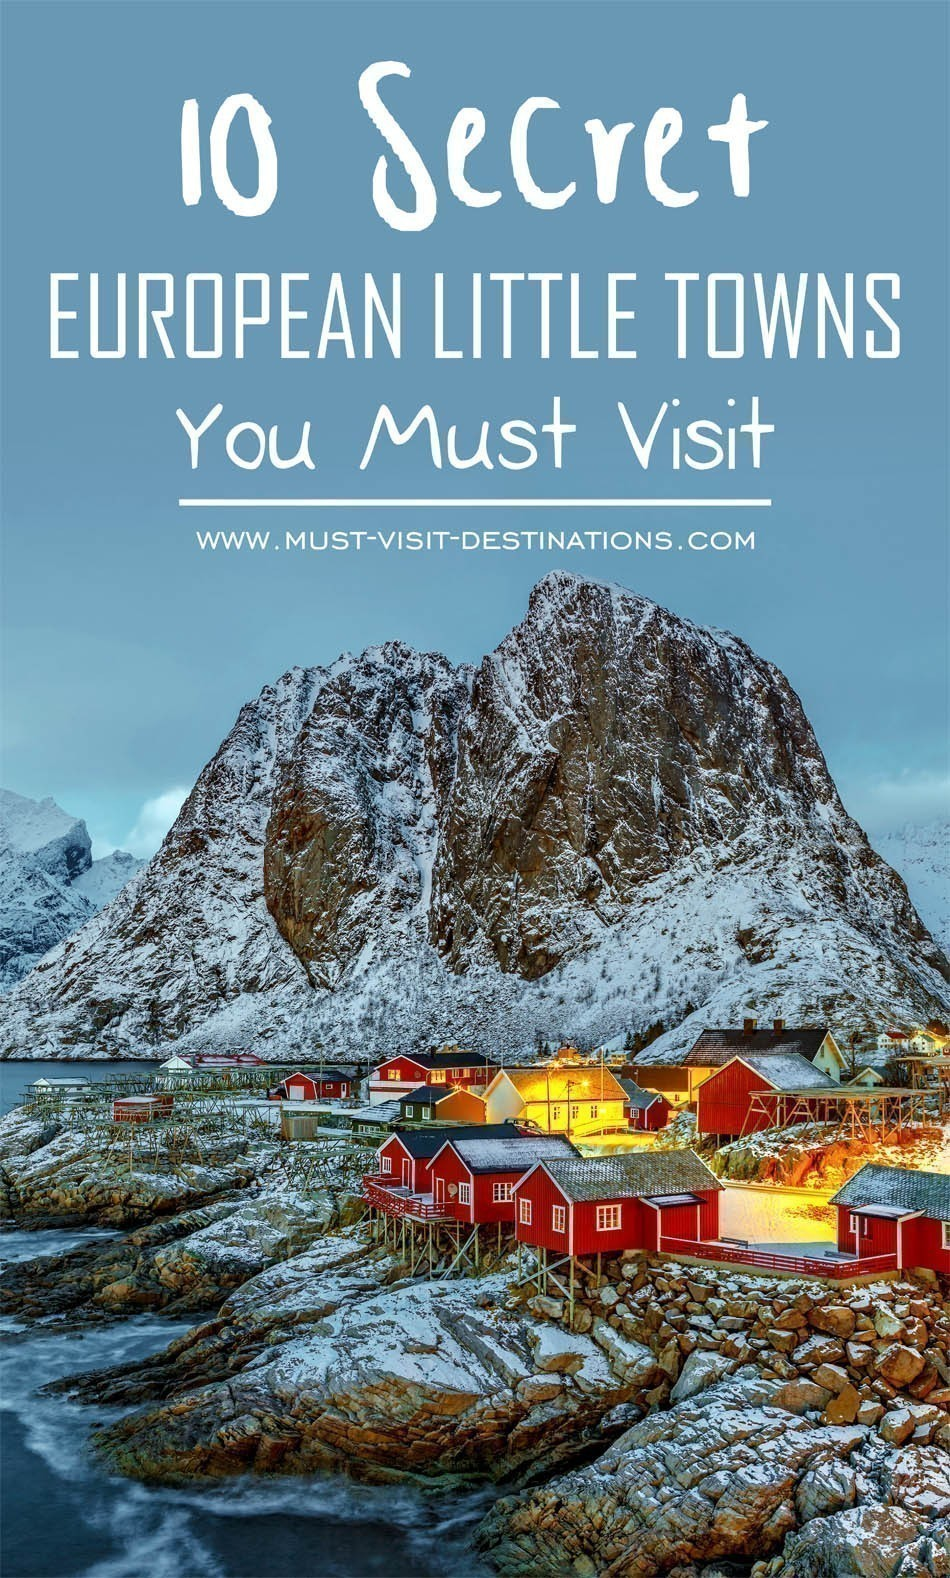 You Must: 10 Secret European Little Towns You Must Visit